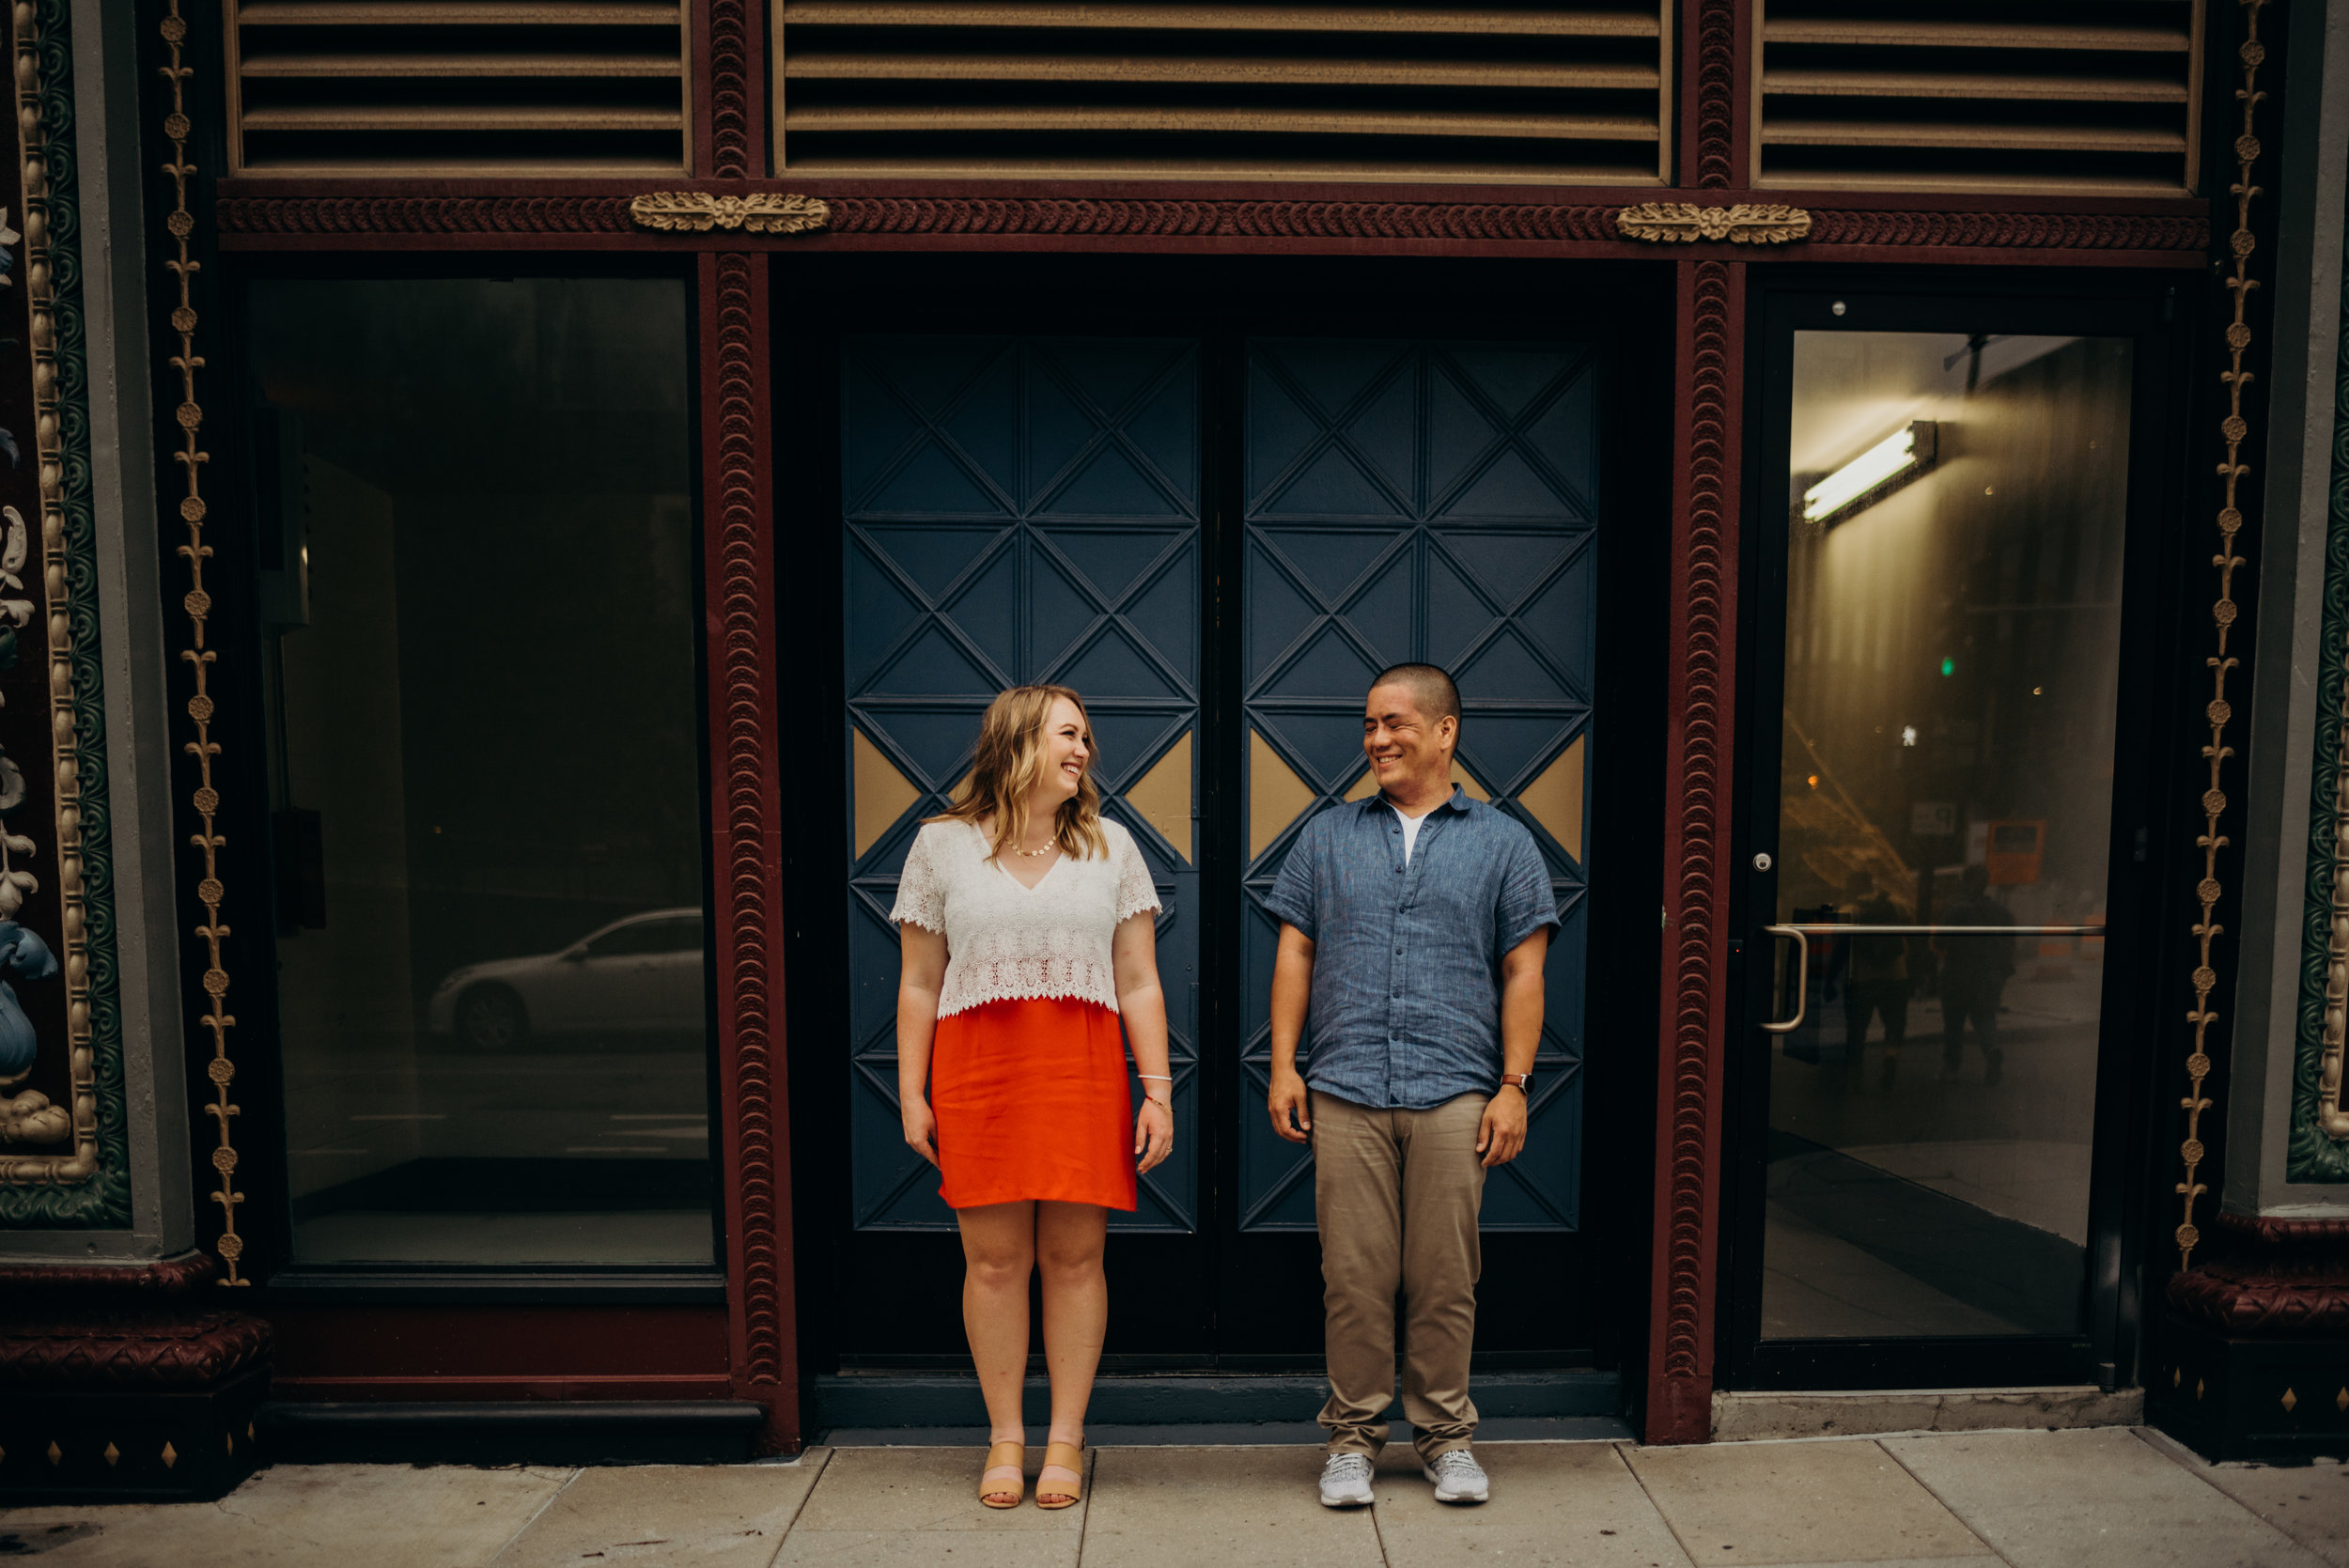 engagement photo taken in front of blue and gold doors in Washington, DC